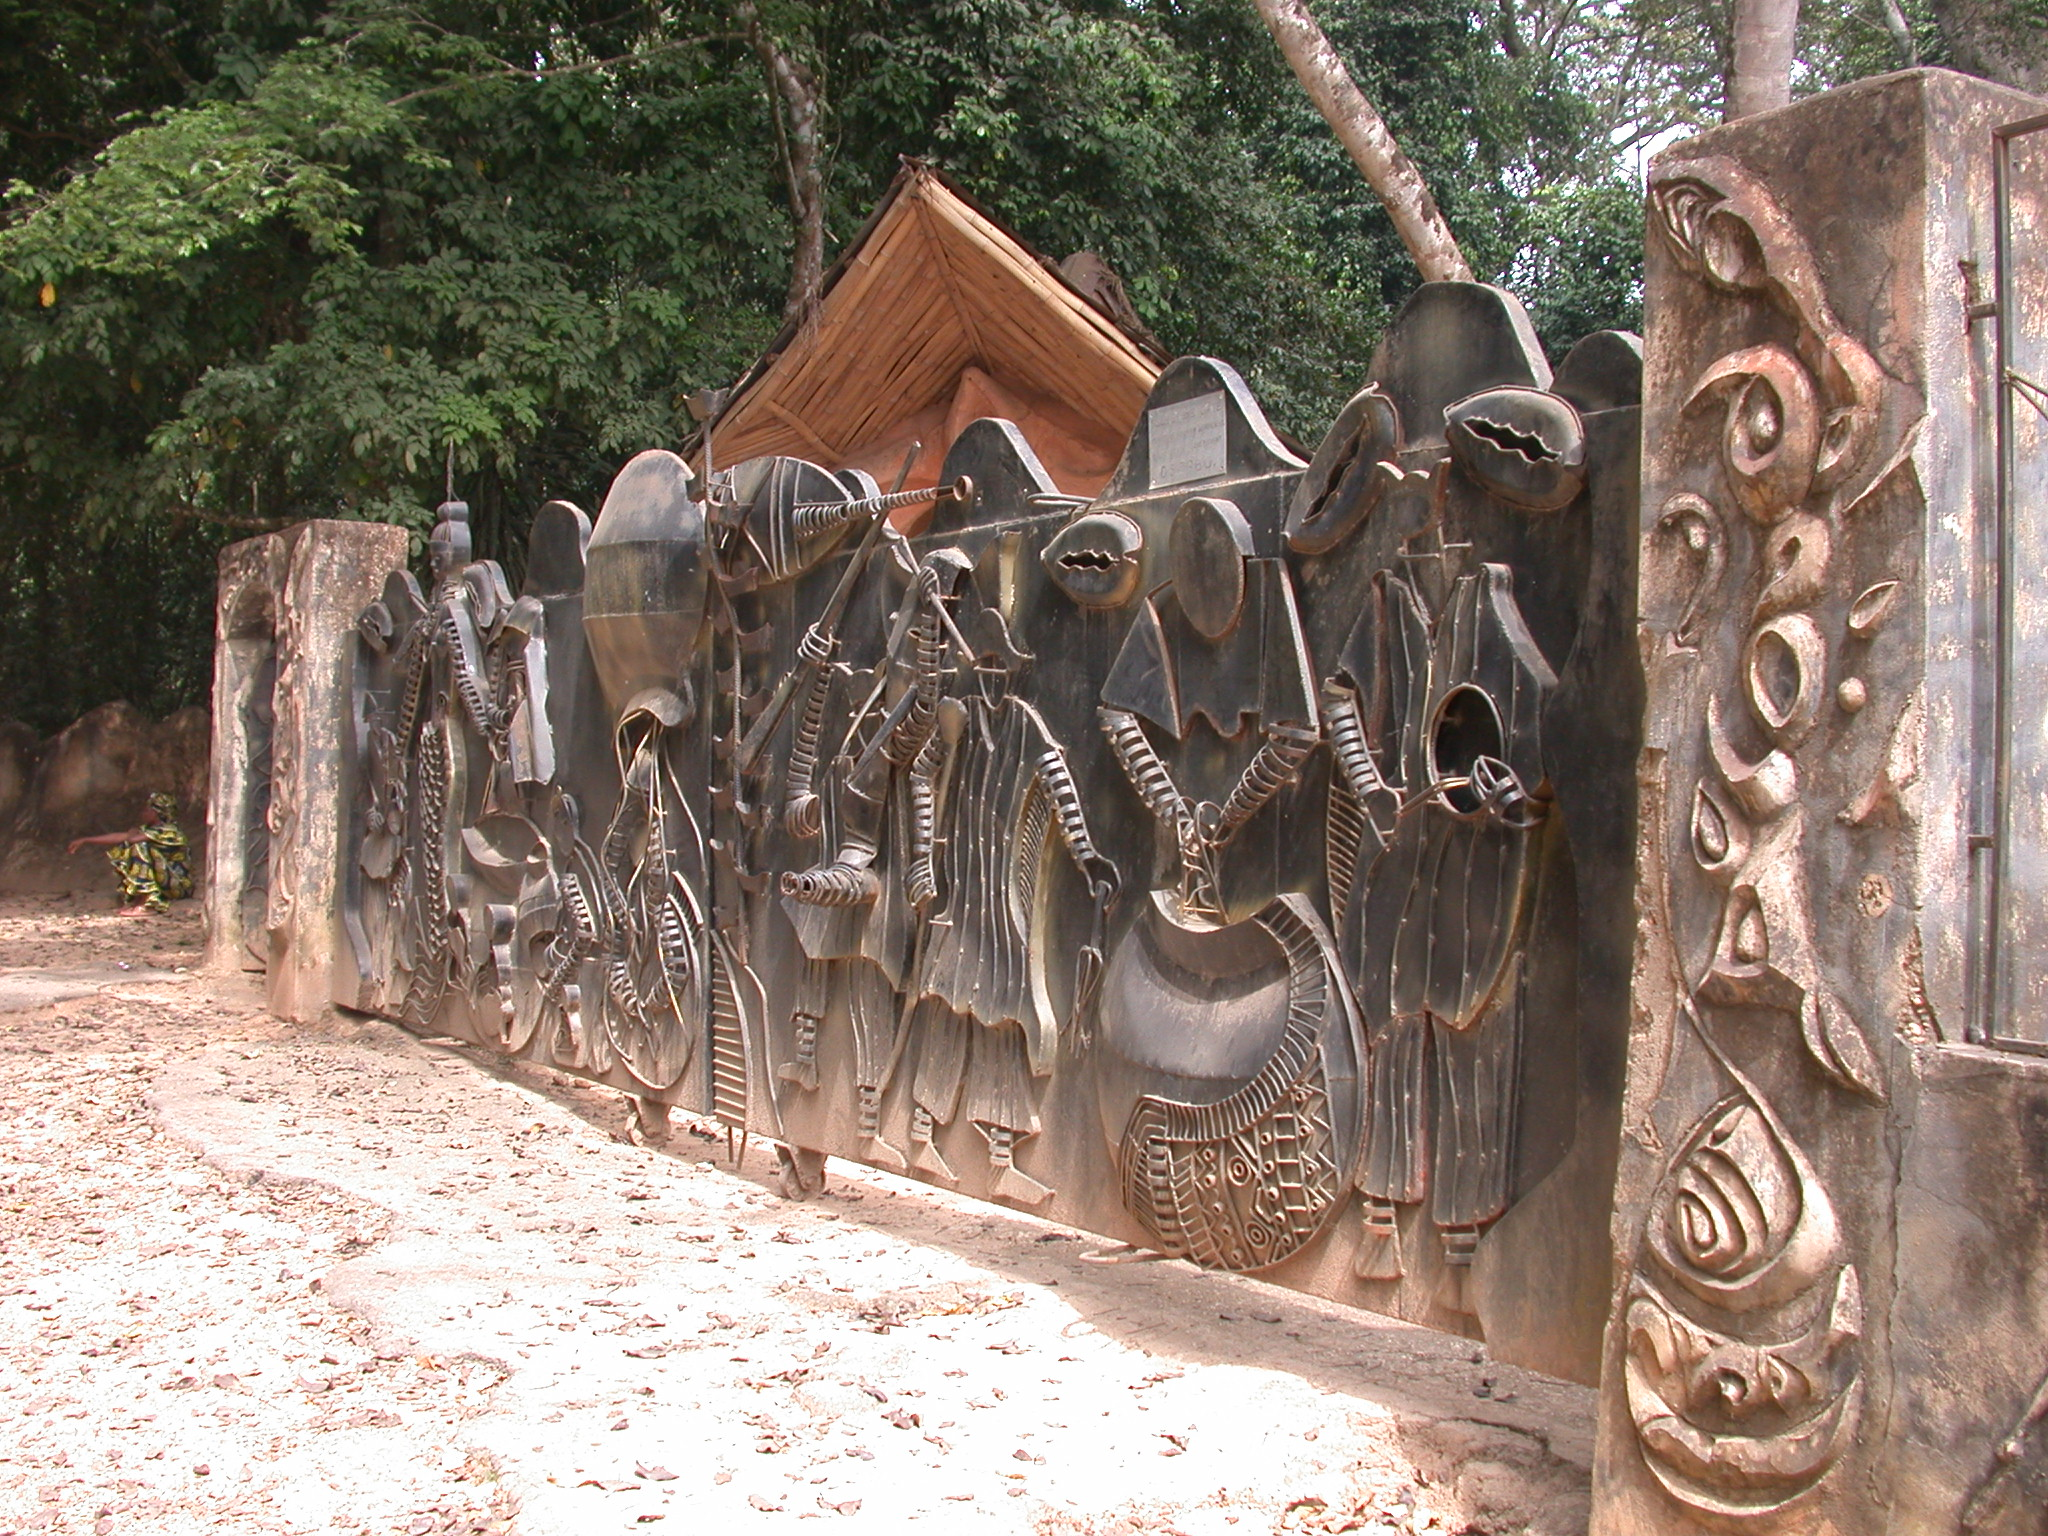 Nigeria entrance gate for osun sacred grove oshogbo